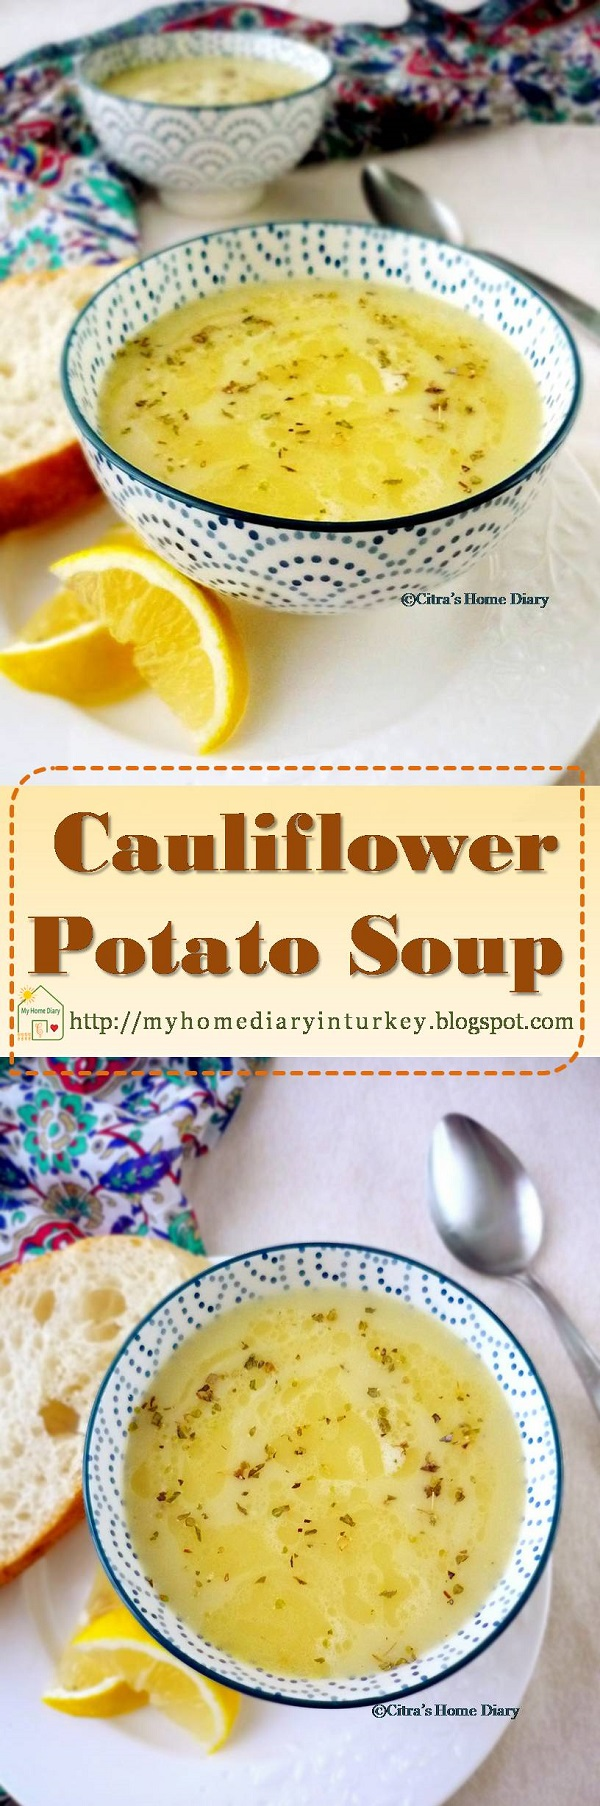 Cauliflower potato soup. Hearty soup that will warm your day. This nutritious and hearty soup guarantee will be best start to warm up your family dinner table. #winterrecipe #souprecipe #cauliflowerrecipe #potato #lentil #heartysoup #comfortfood